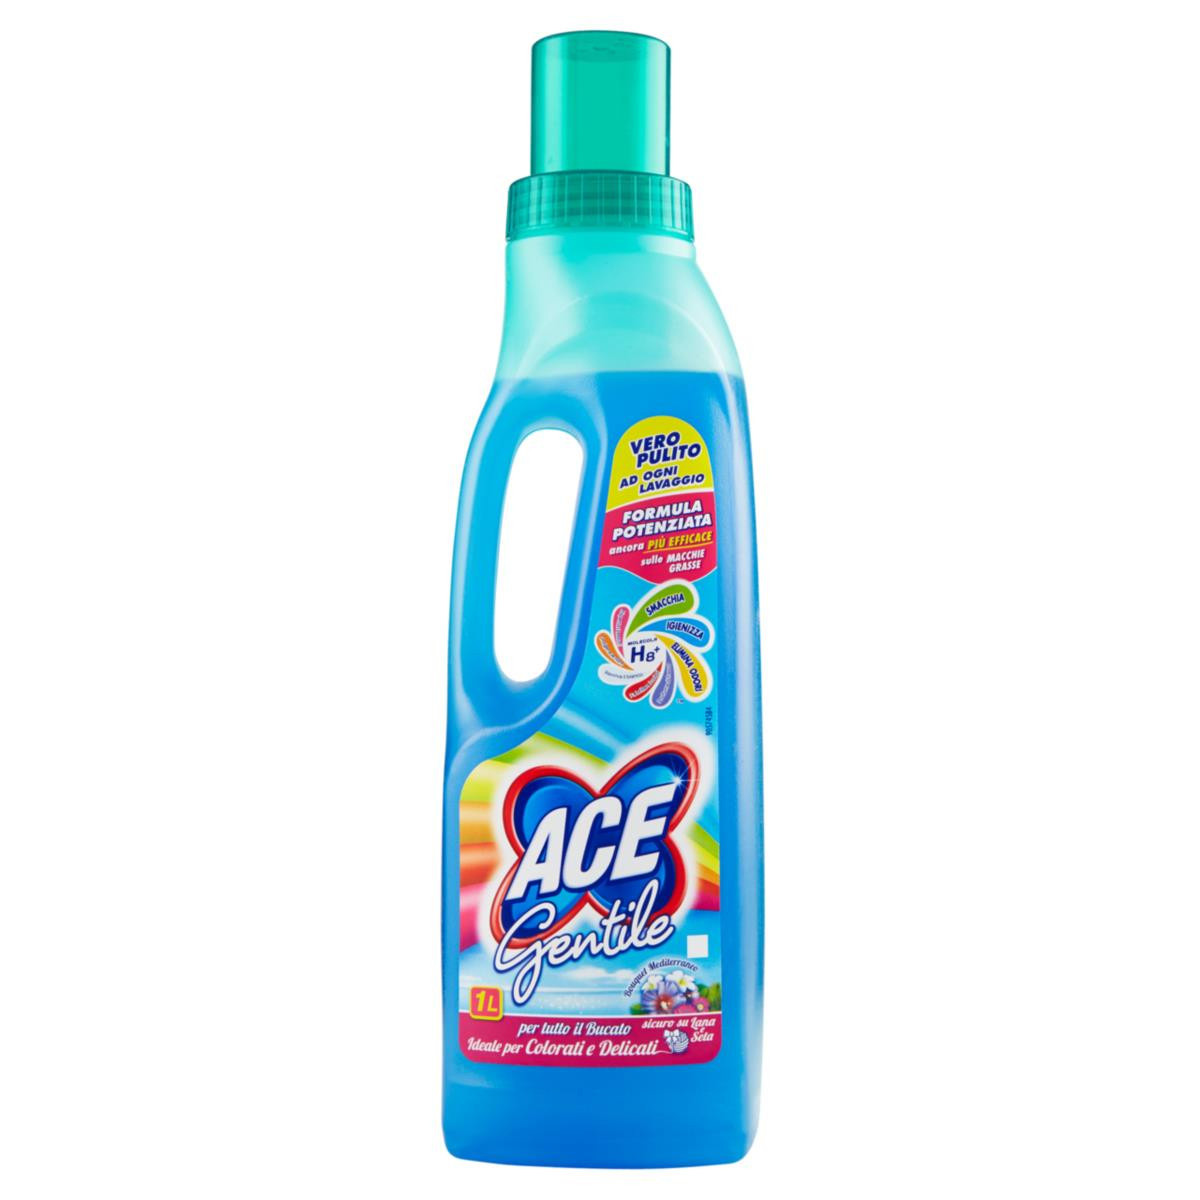 ACE GENTILE COLORATI E DELICATI 1000 ML